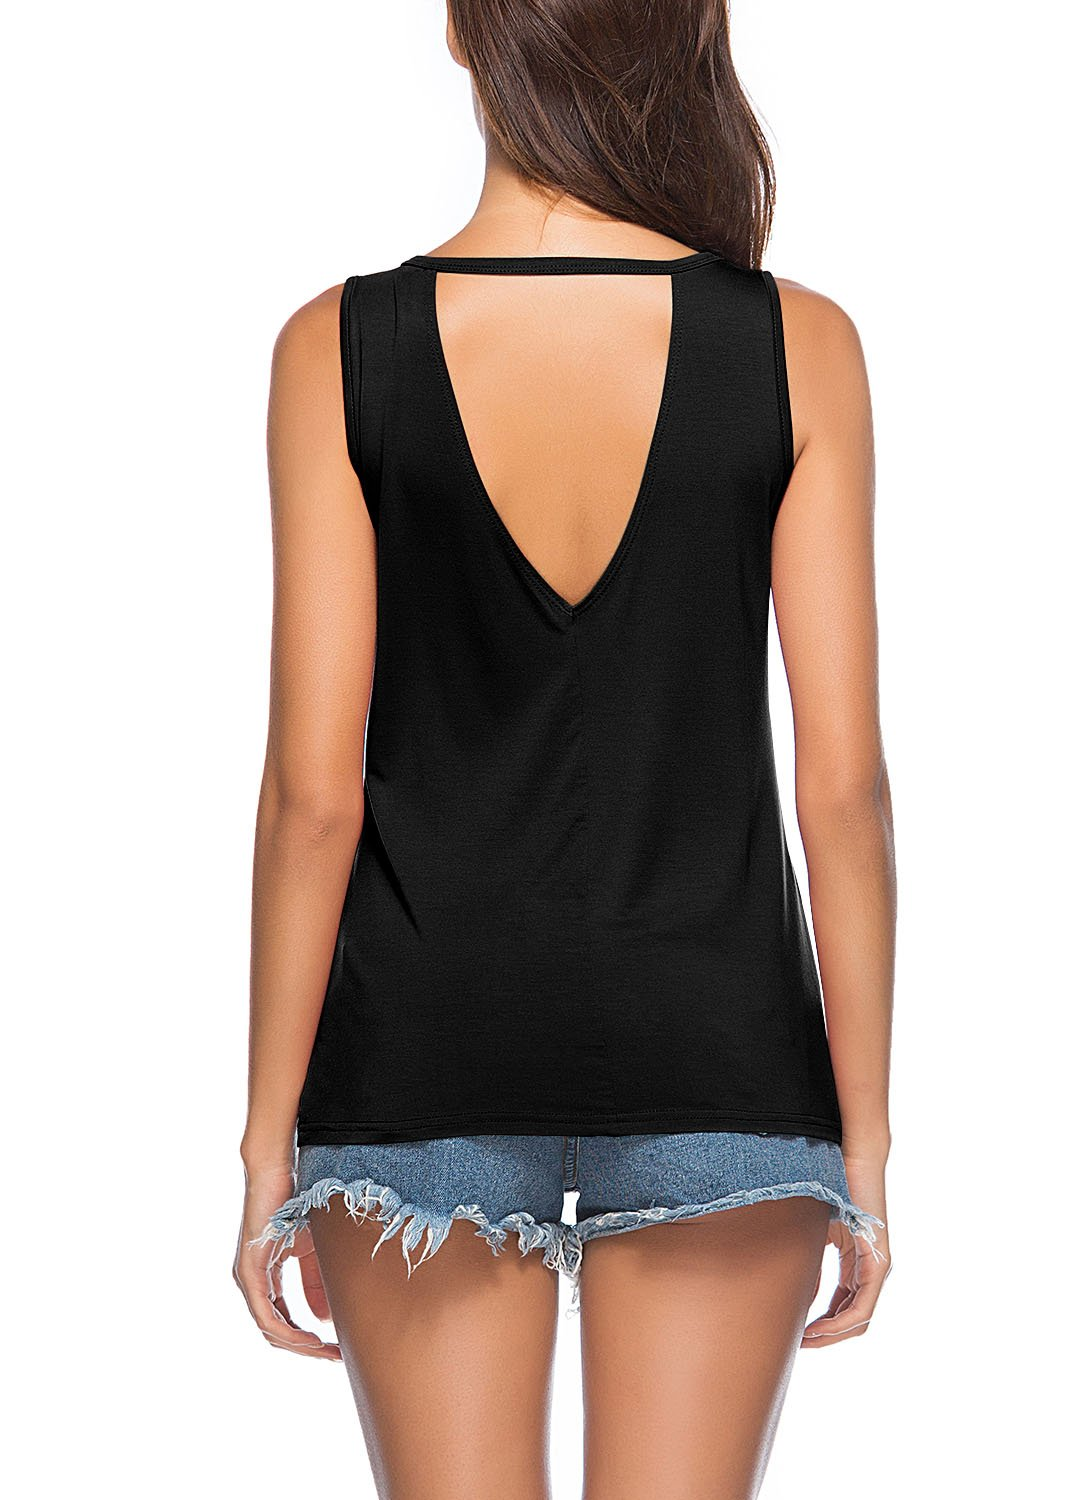 Yucharmyi Women's Sleeveless Casual Tank V Neck Causal